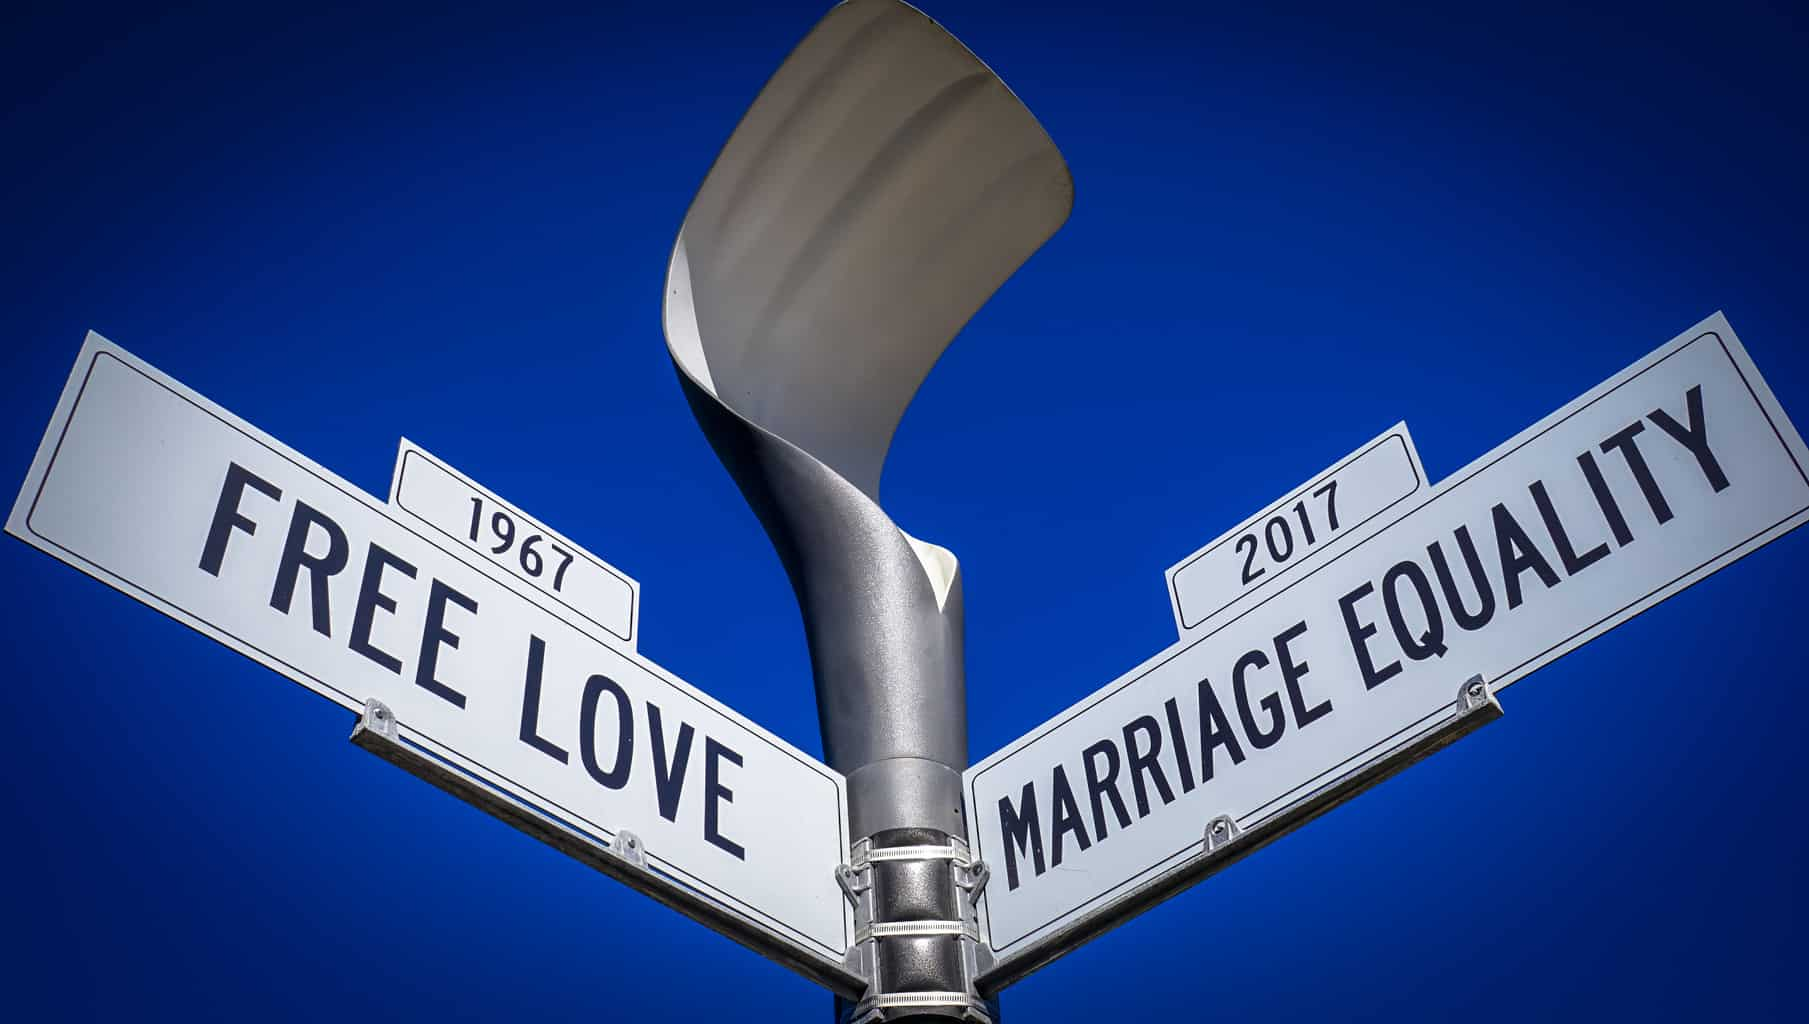 """Street signs with sky above, """"free love"""" and """"marriage equality"""""""